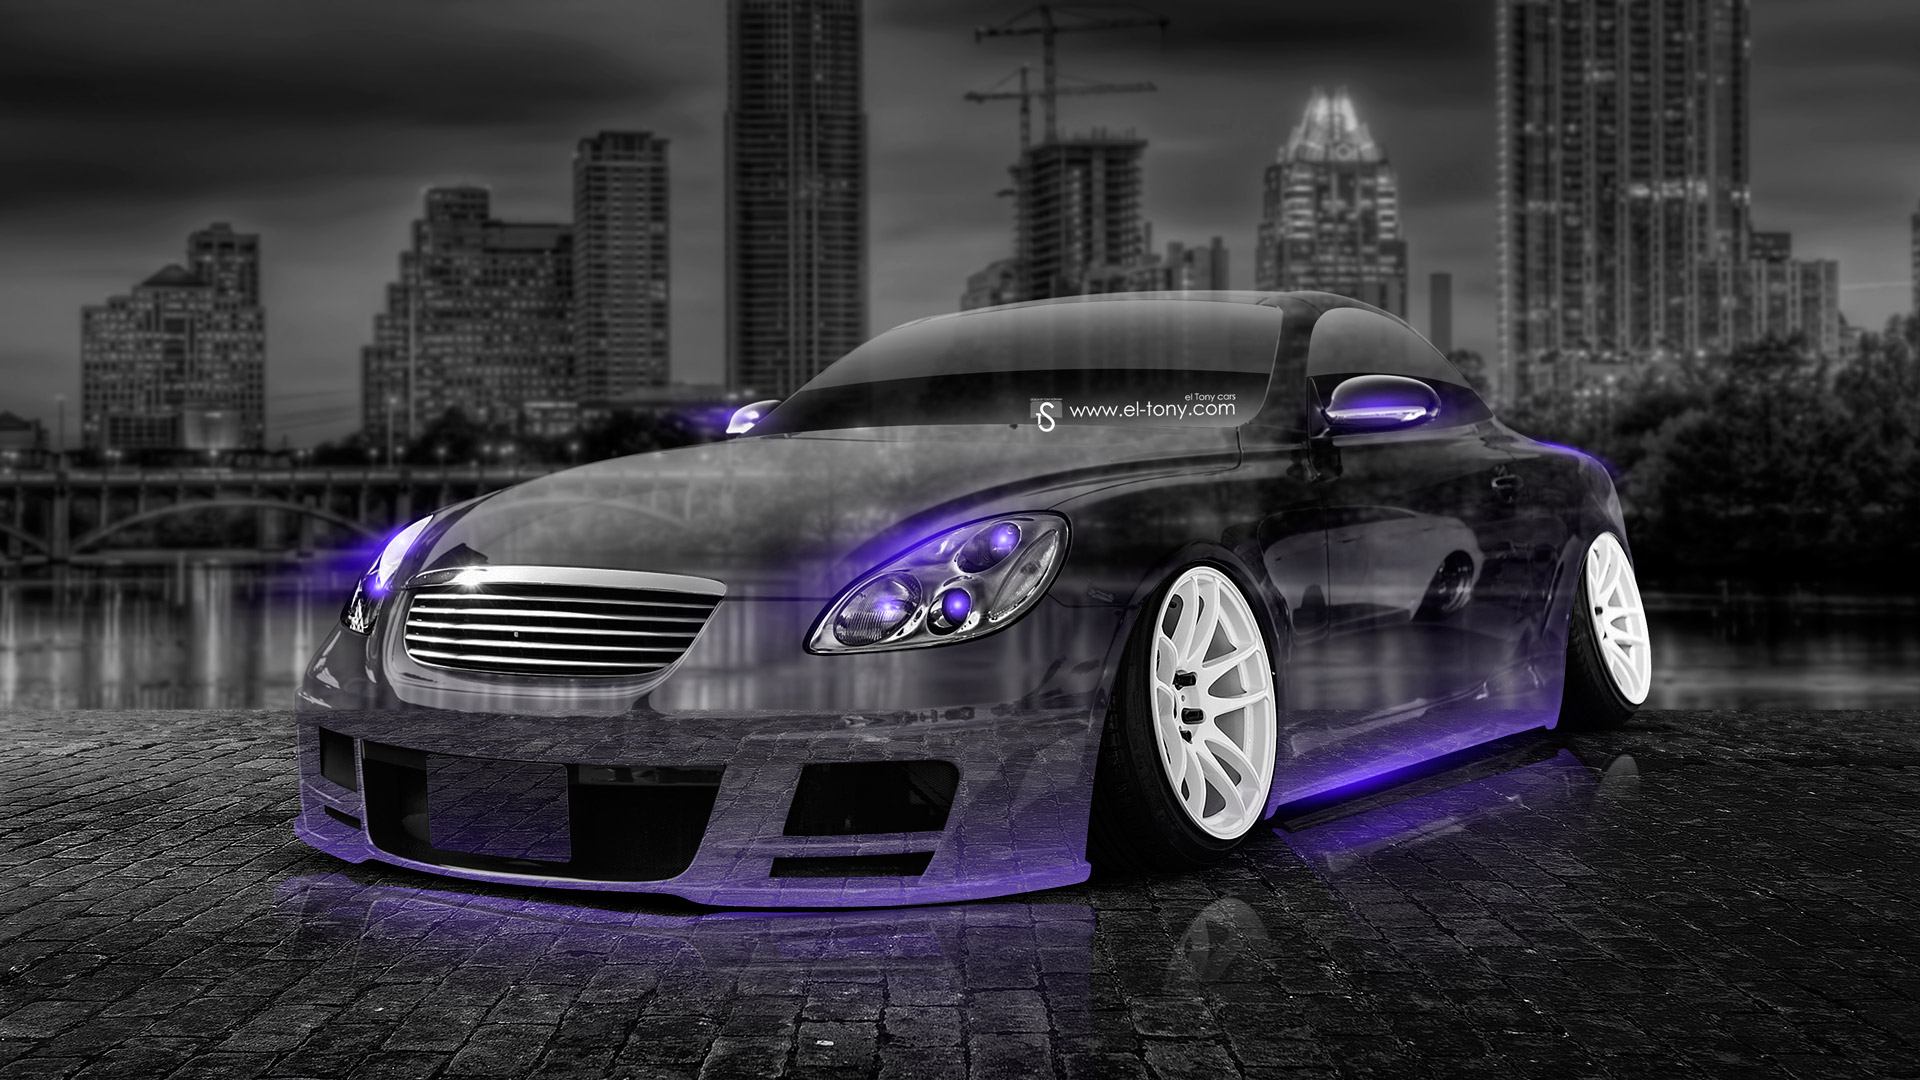 Superb Bon Toyota Soarer JDM Crystal City Car 2014 Violet